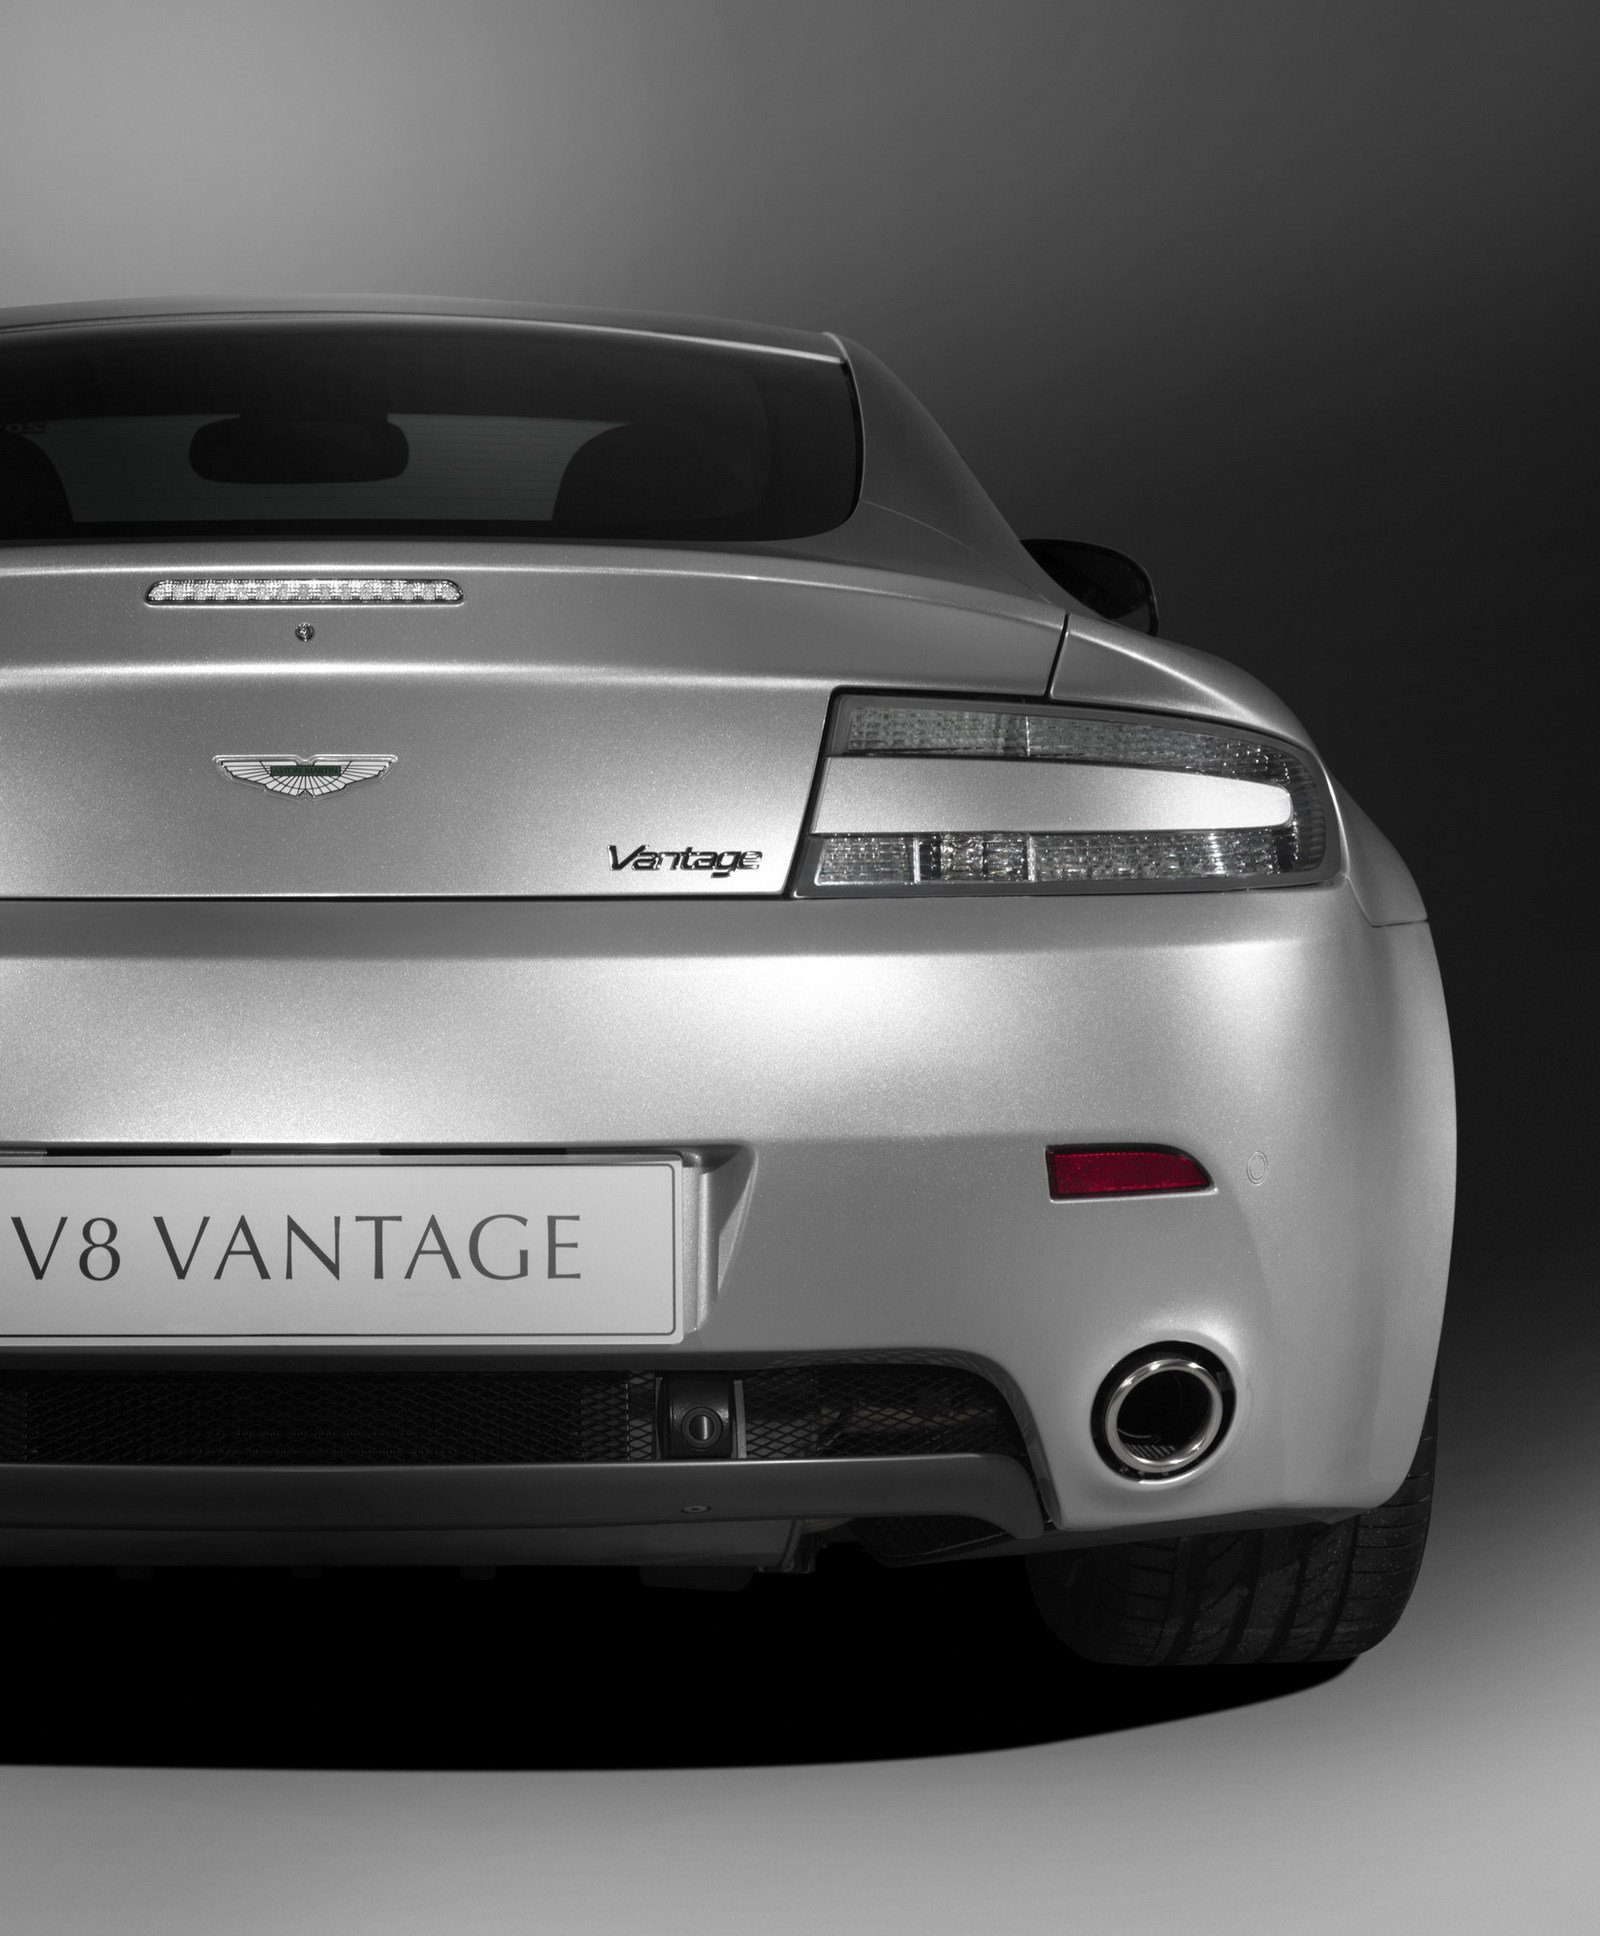 2010 Aston Martin V8 Vantage High Quality